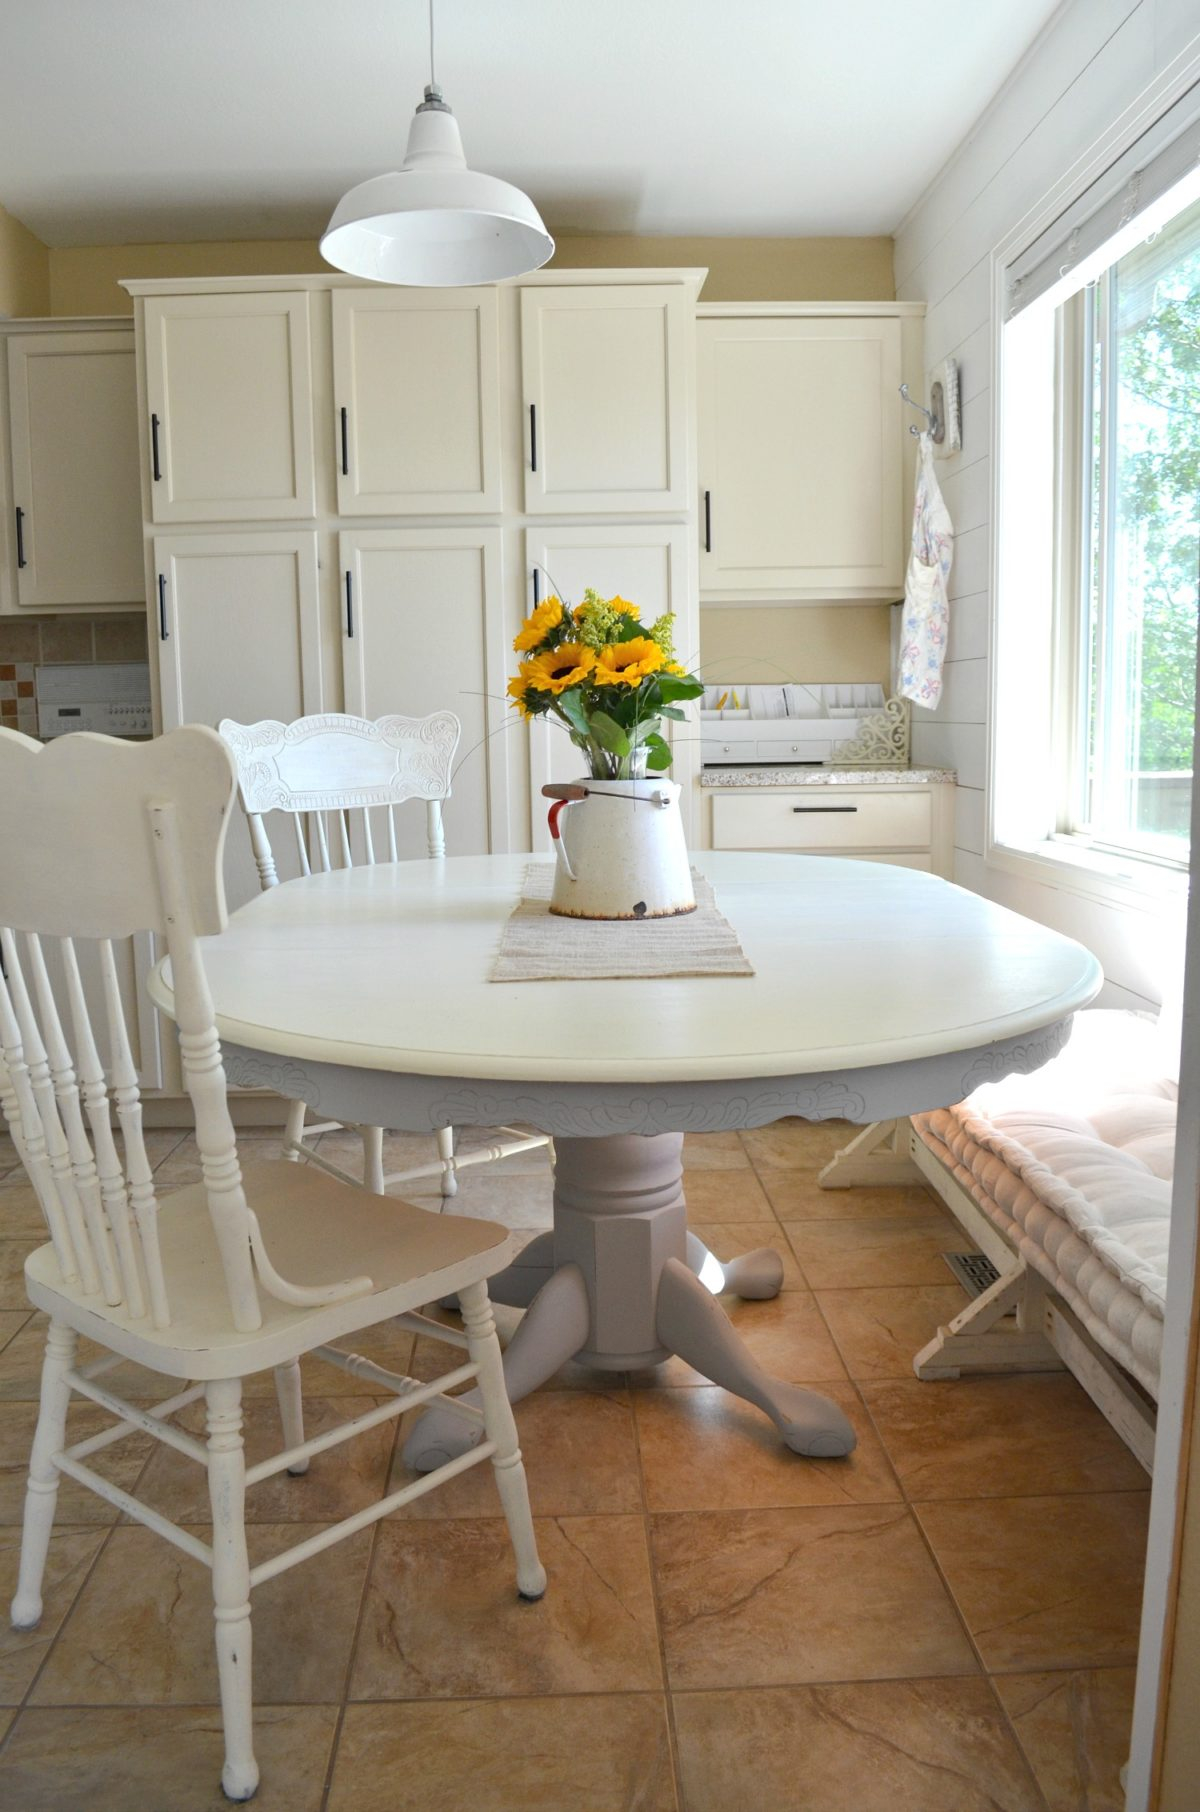 Diy Projects Chalk Paint Dining Table Makeover Sarah Joy pertaining to sizing 1200 X 1812